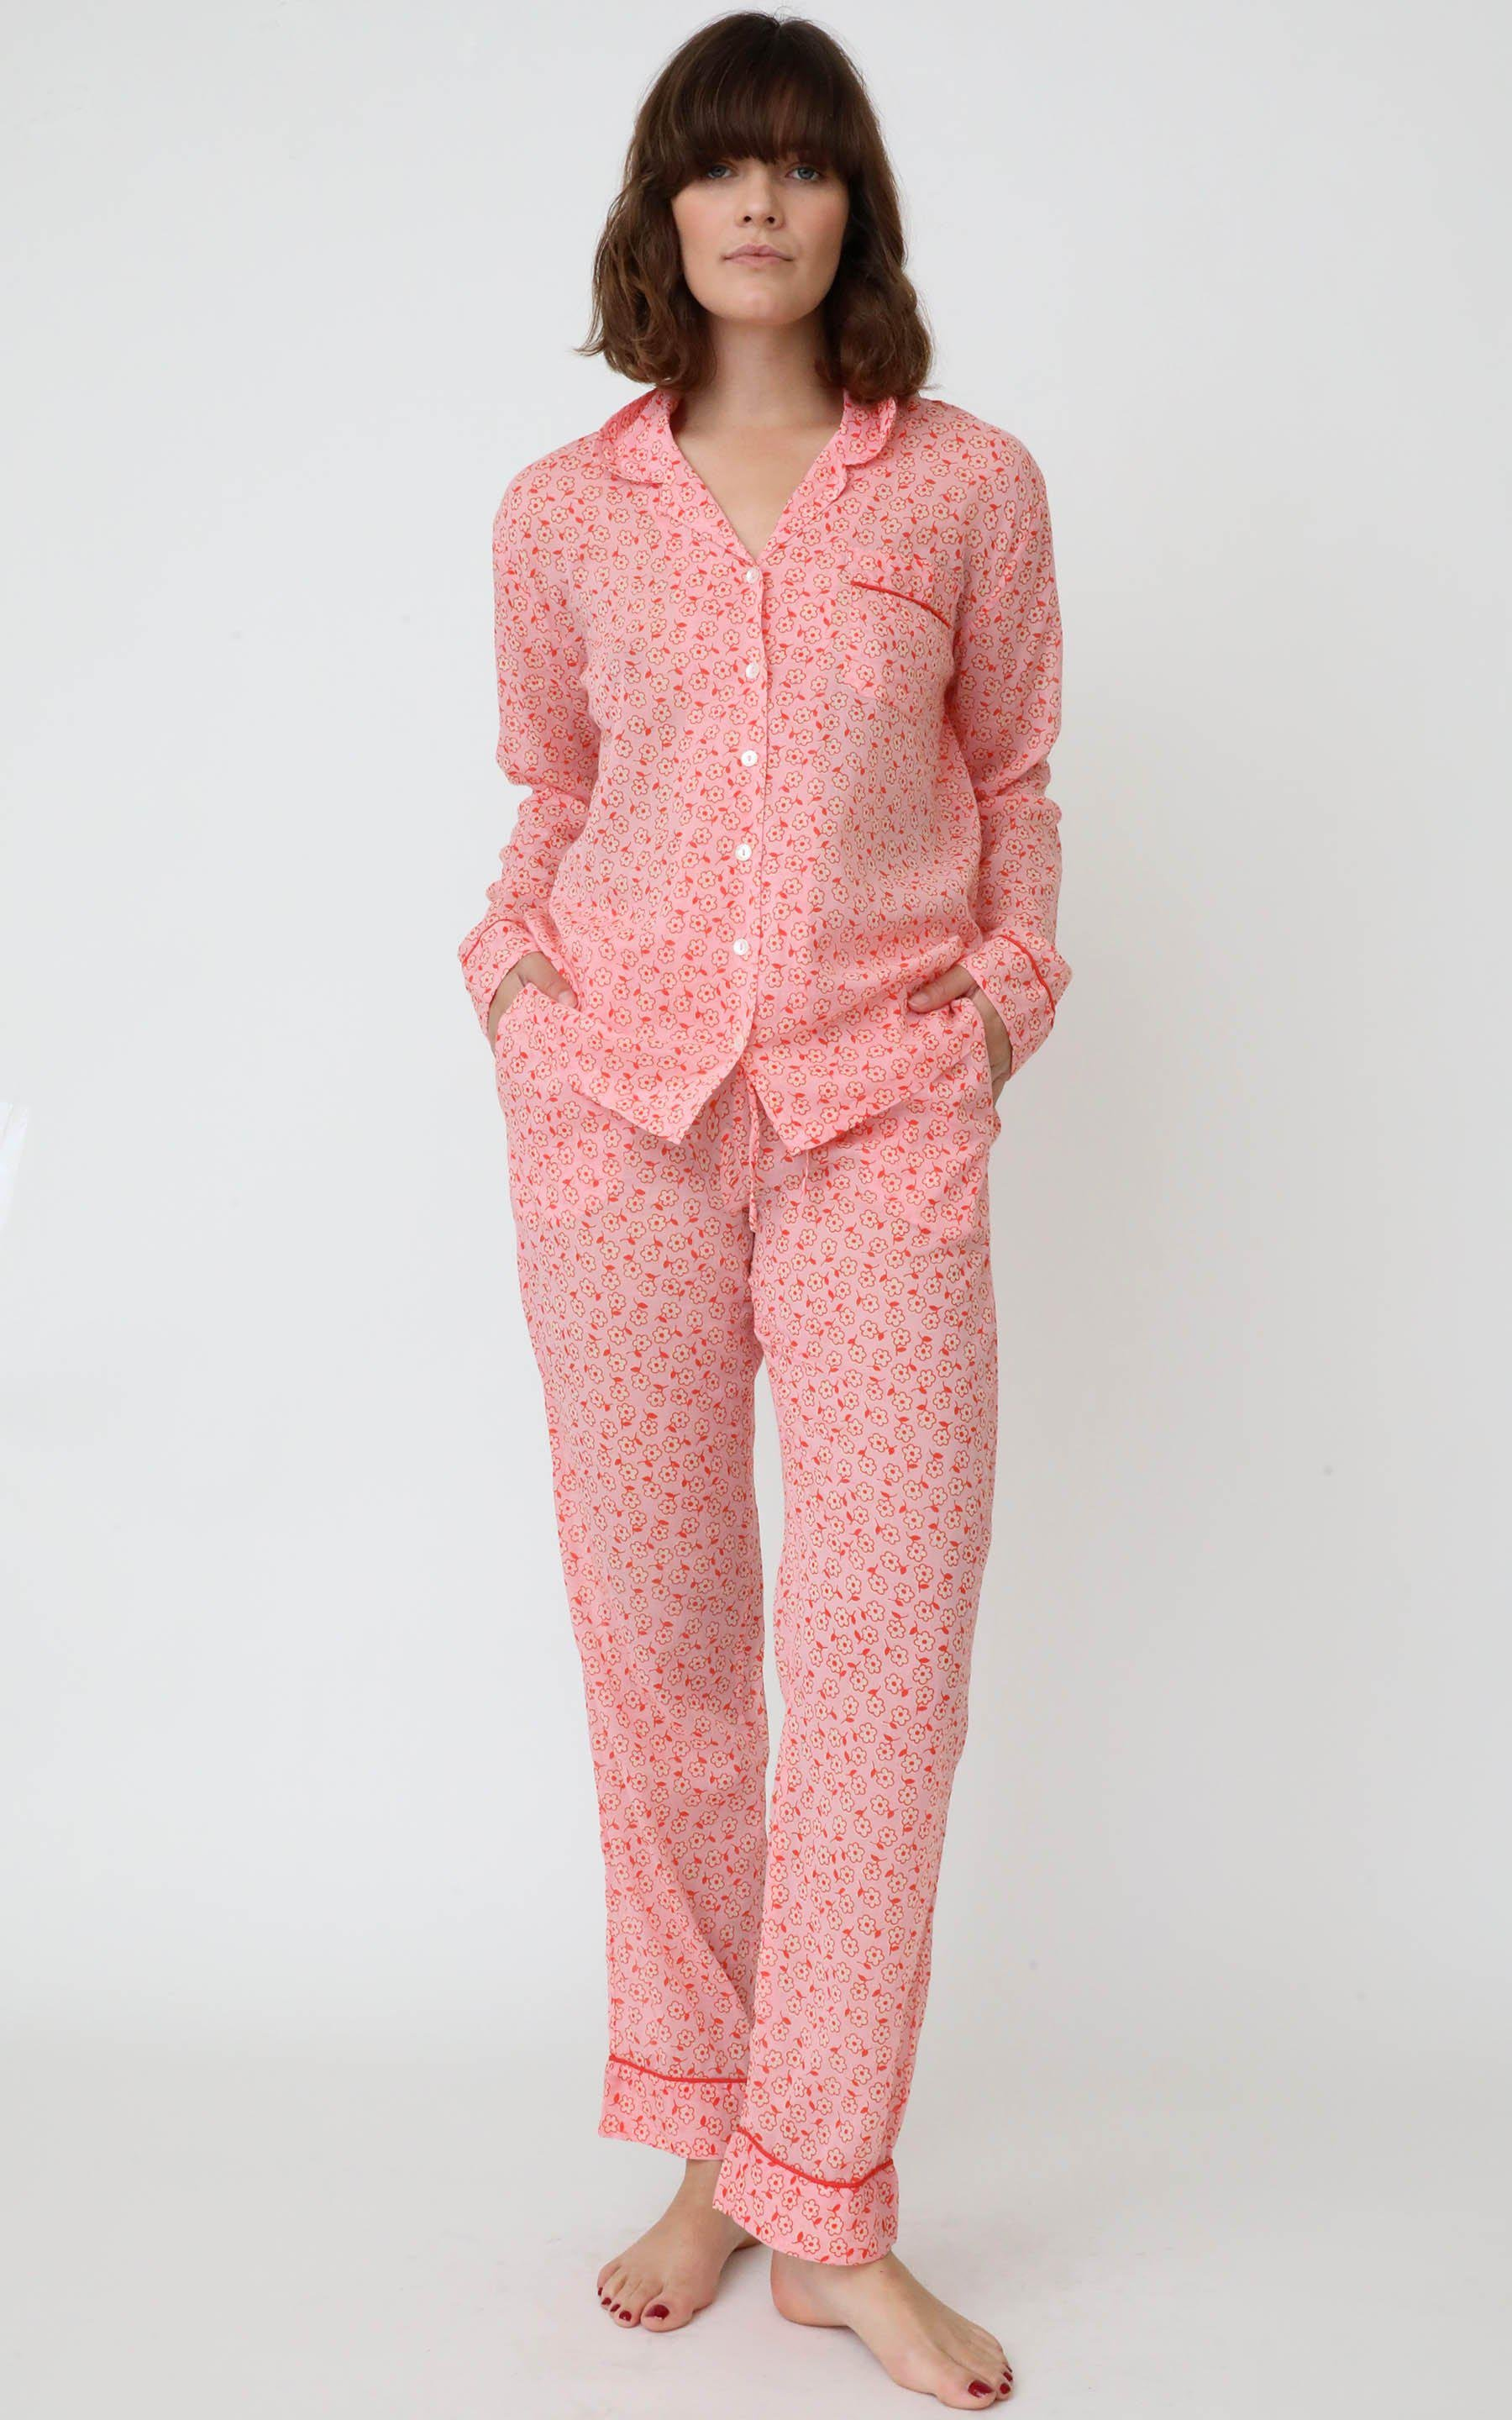 Moondust Pajamas Scattered Daisy Orchid Pink